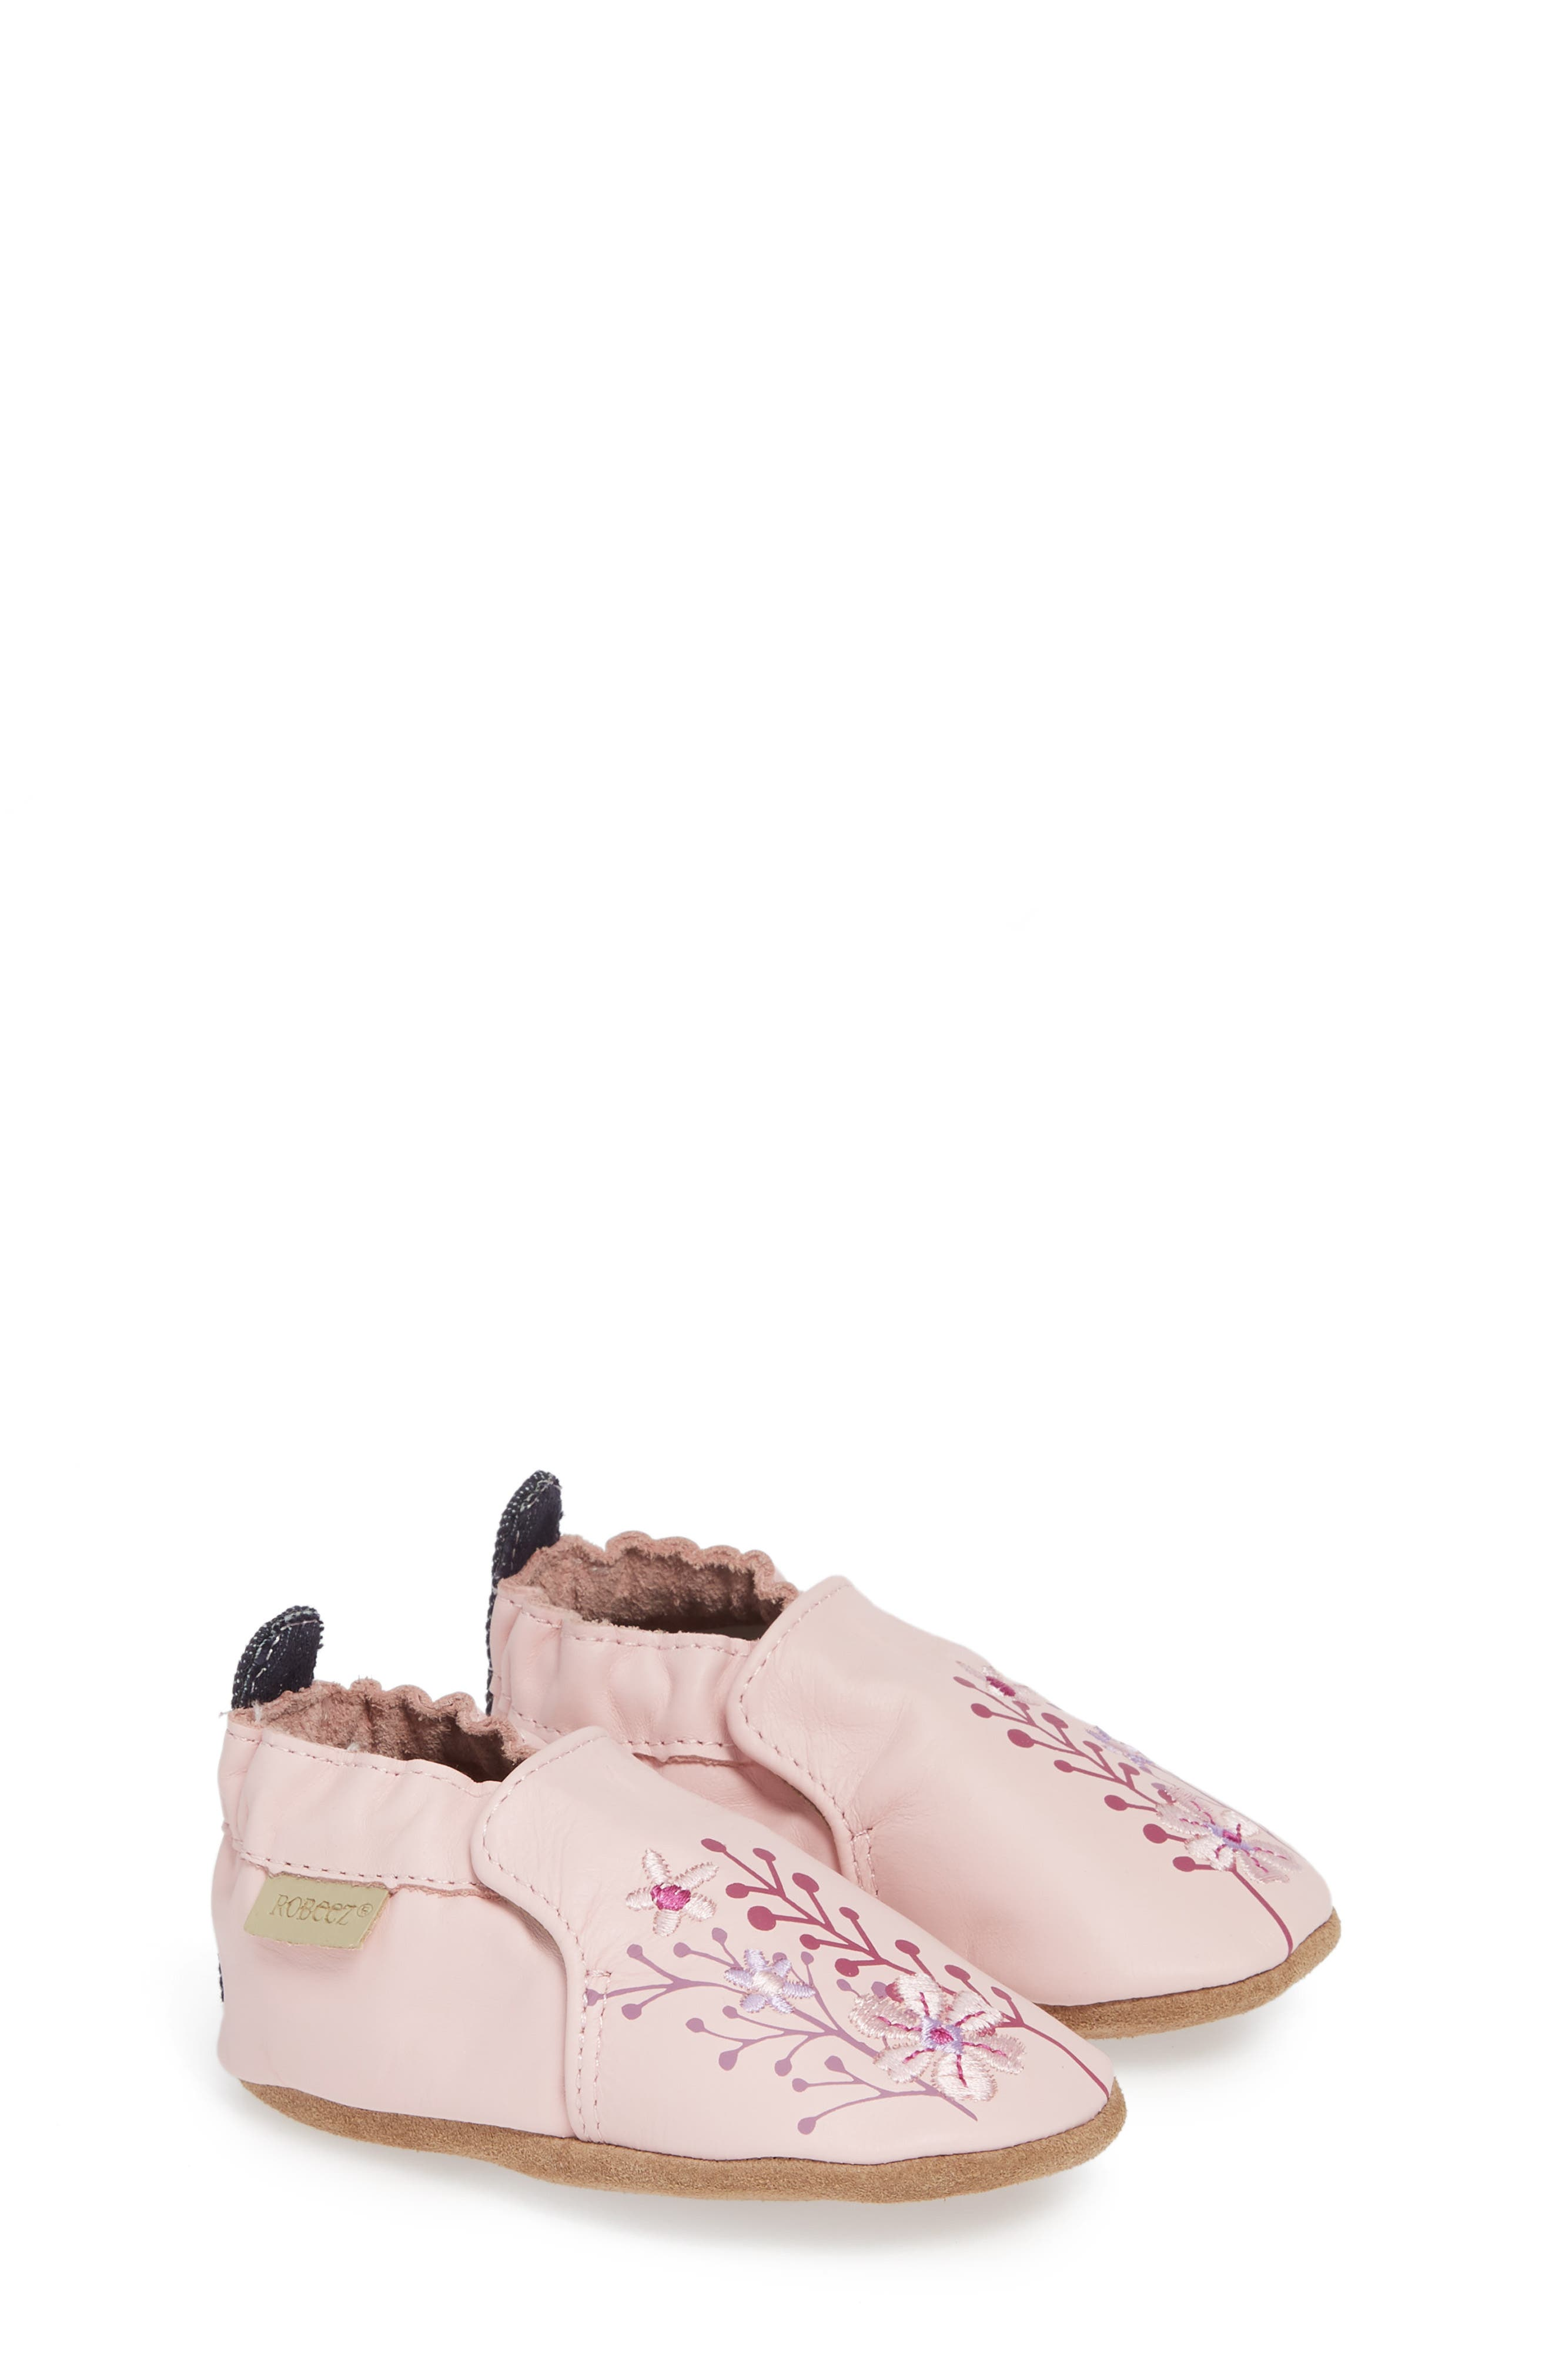 Blooming Floral Crib Shoe, Main, color, LIGHT PINK